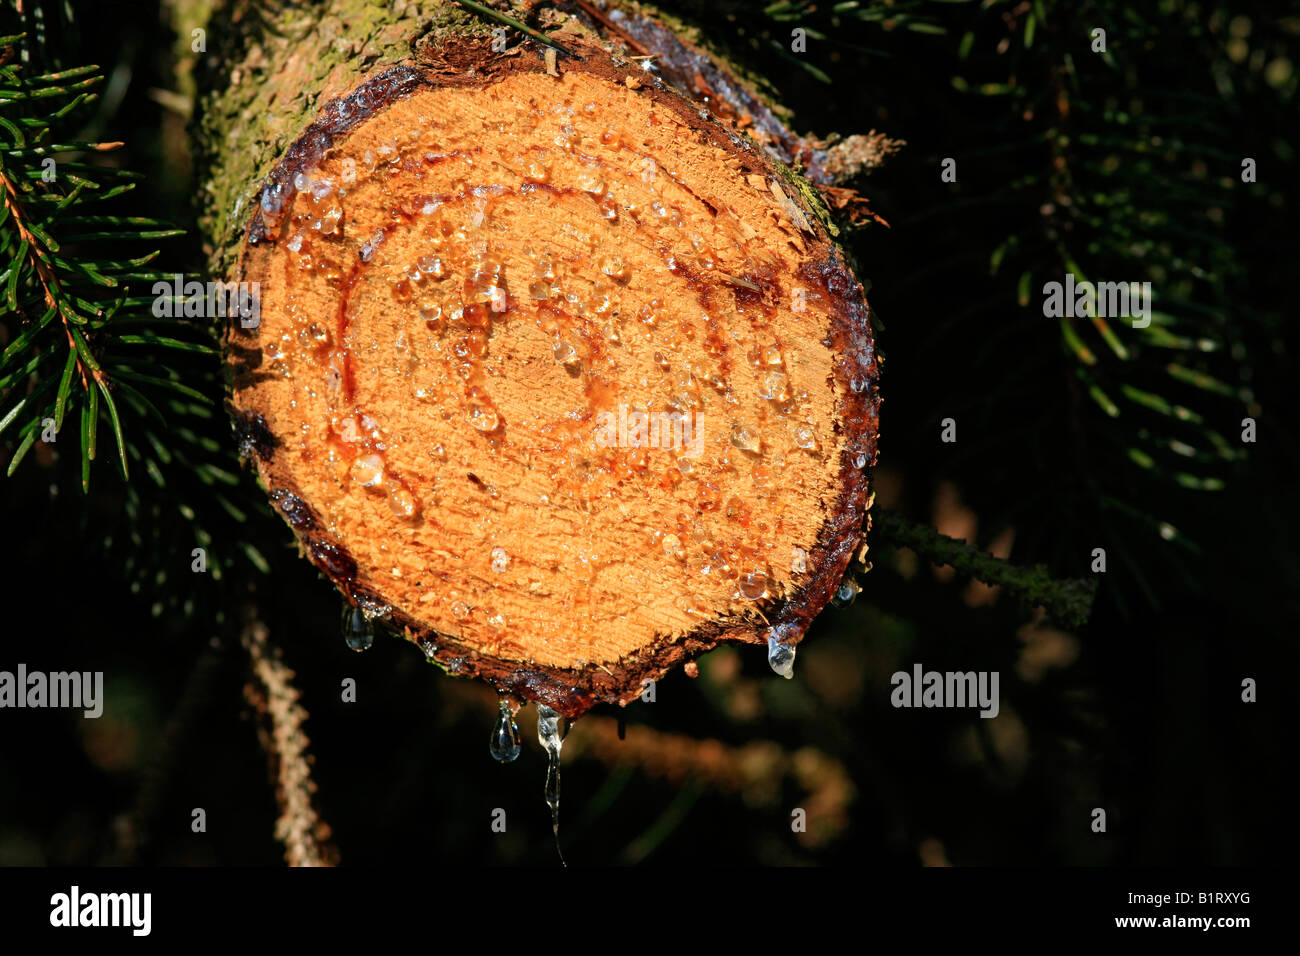 Resin, tree resin on the cut surface of a Norway Spruce (Picea abies) - Stock Image